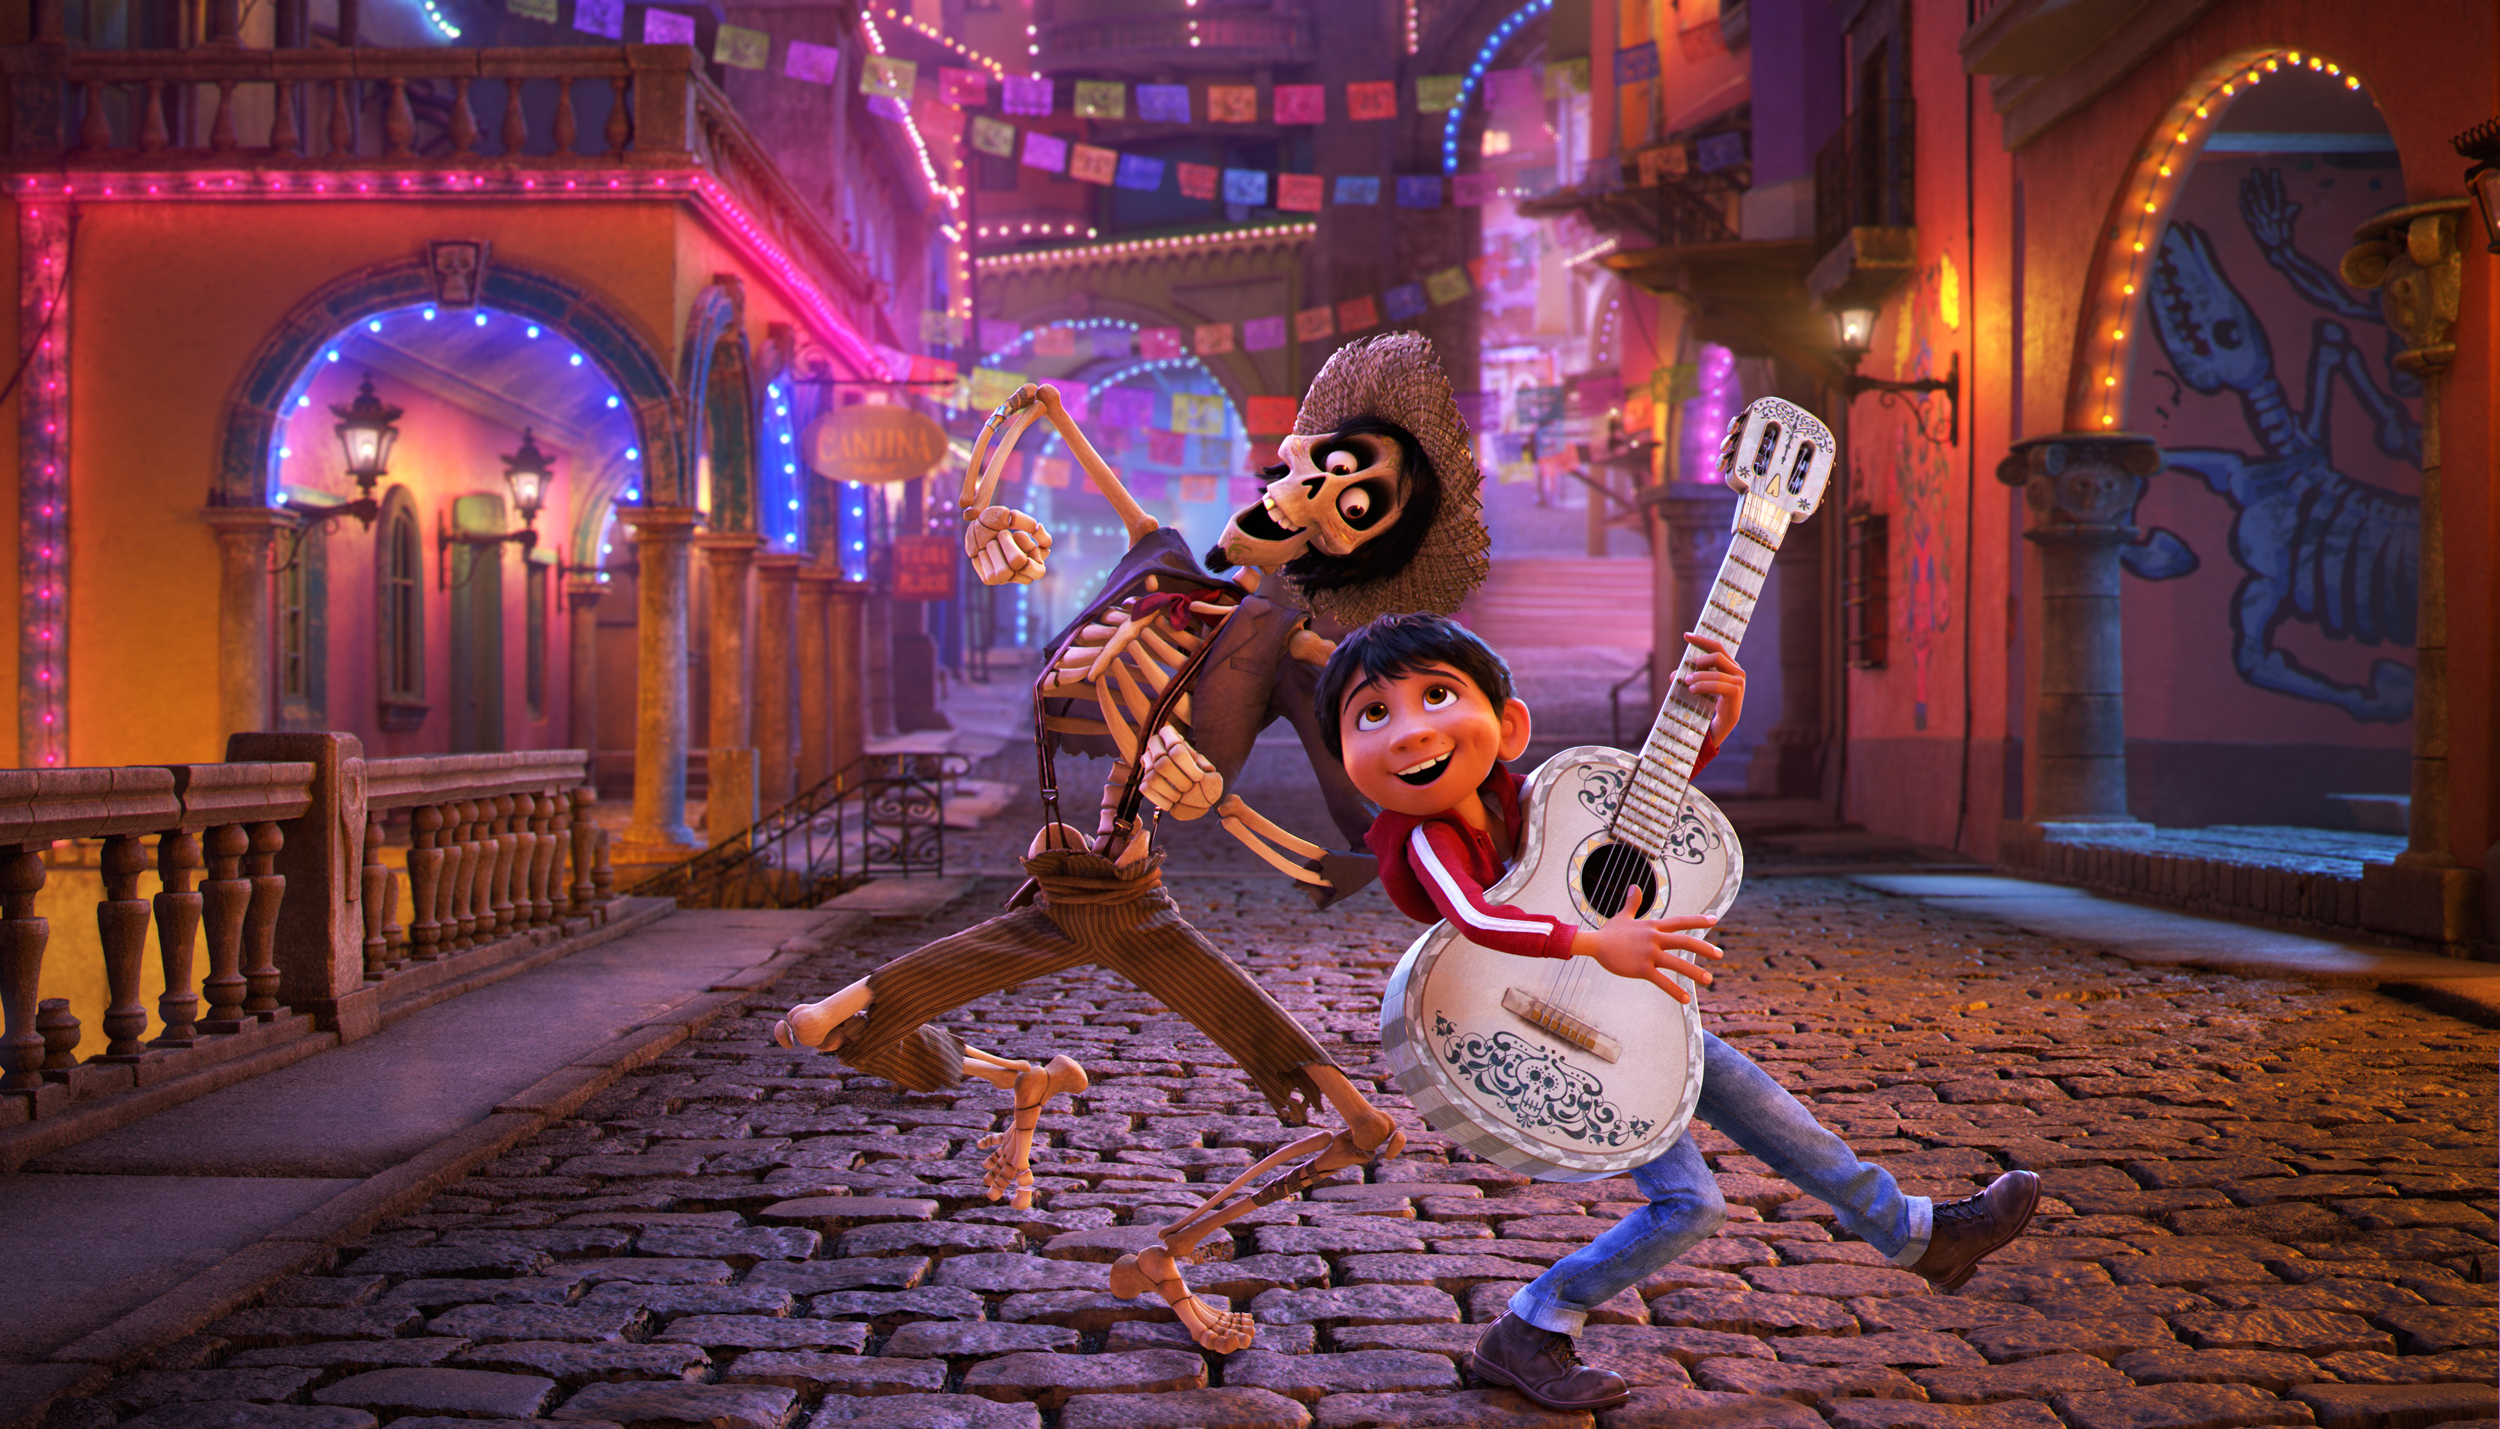 Screenshot Coco Pixar Disney